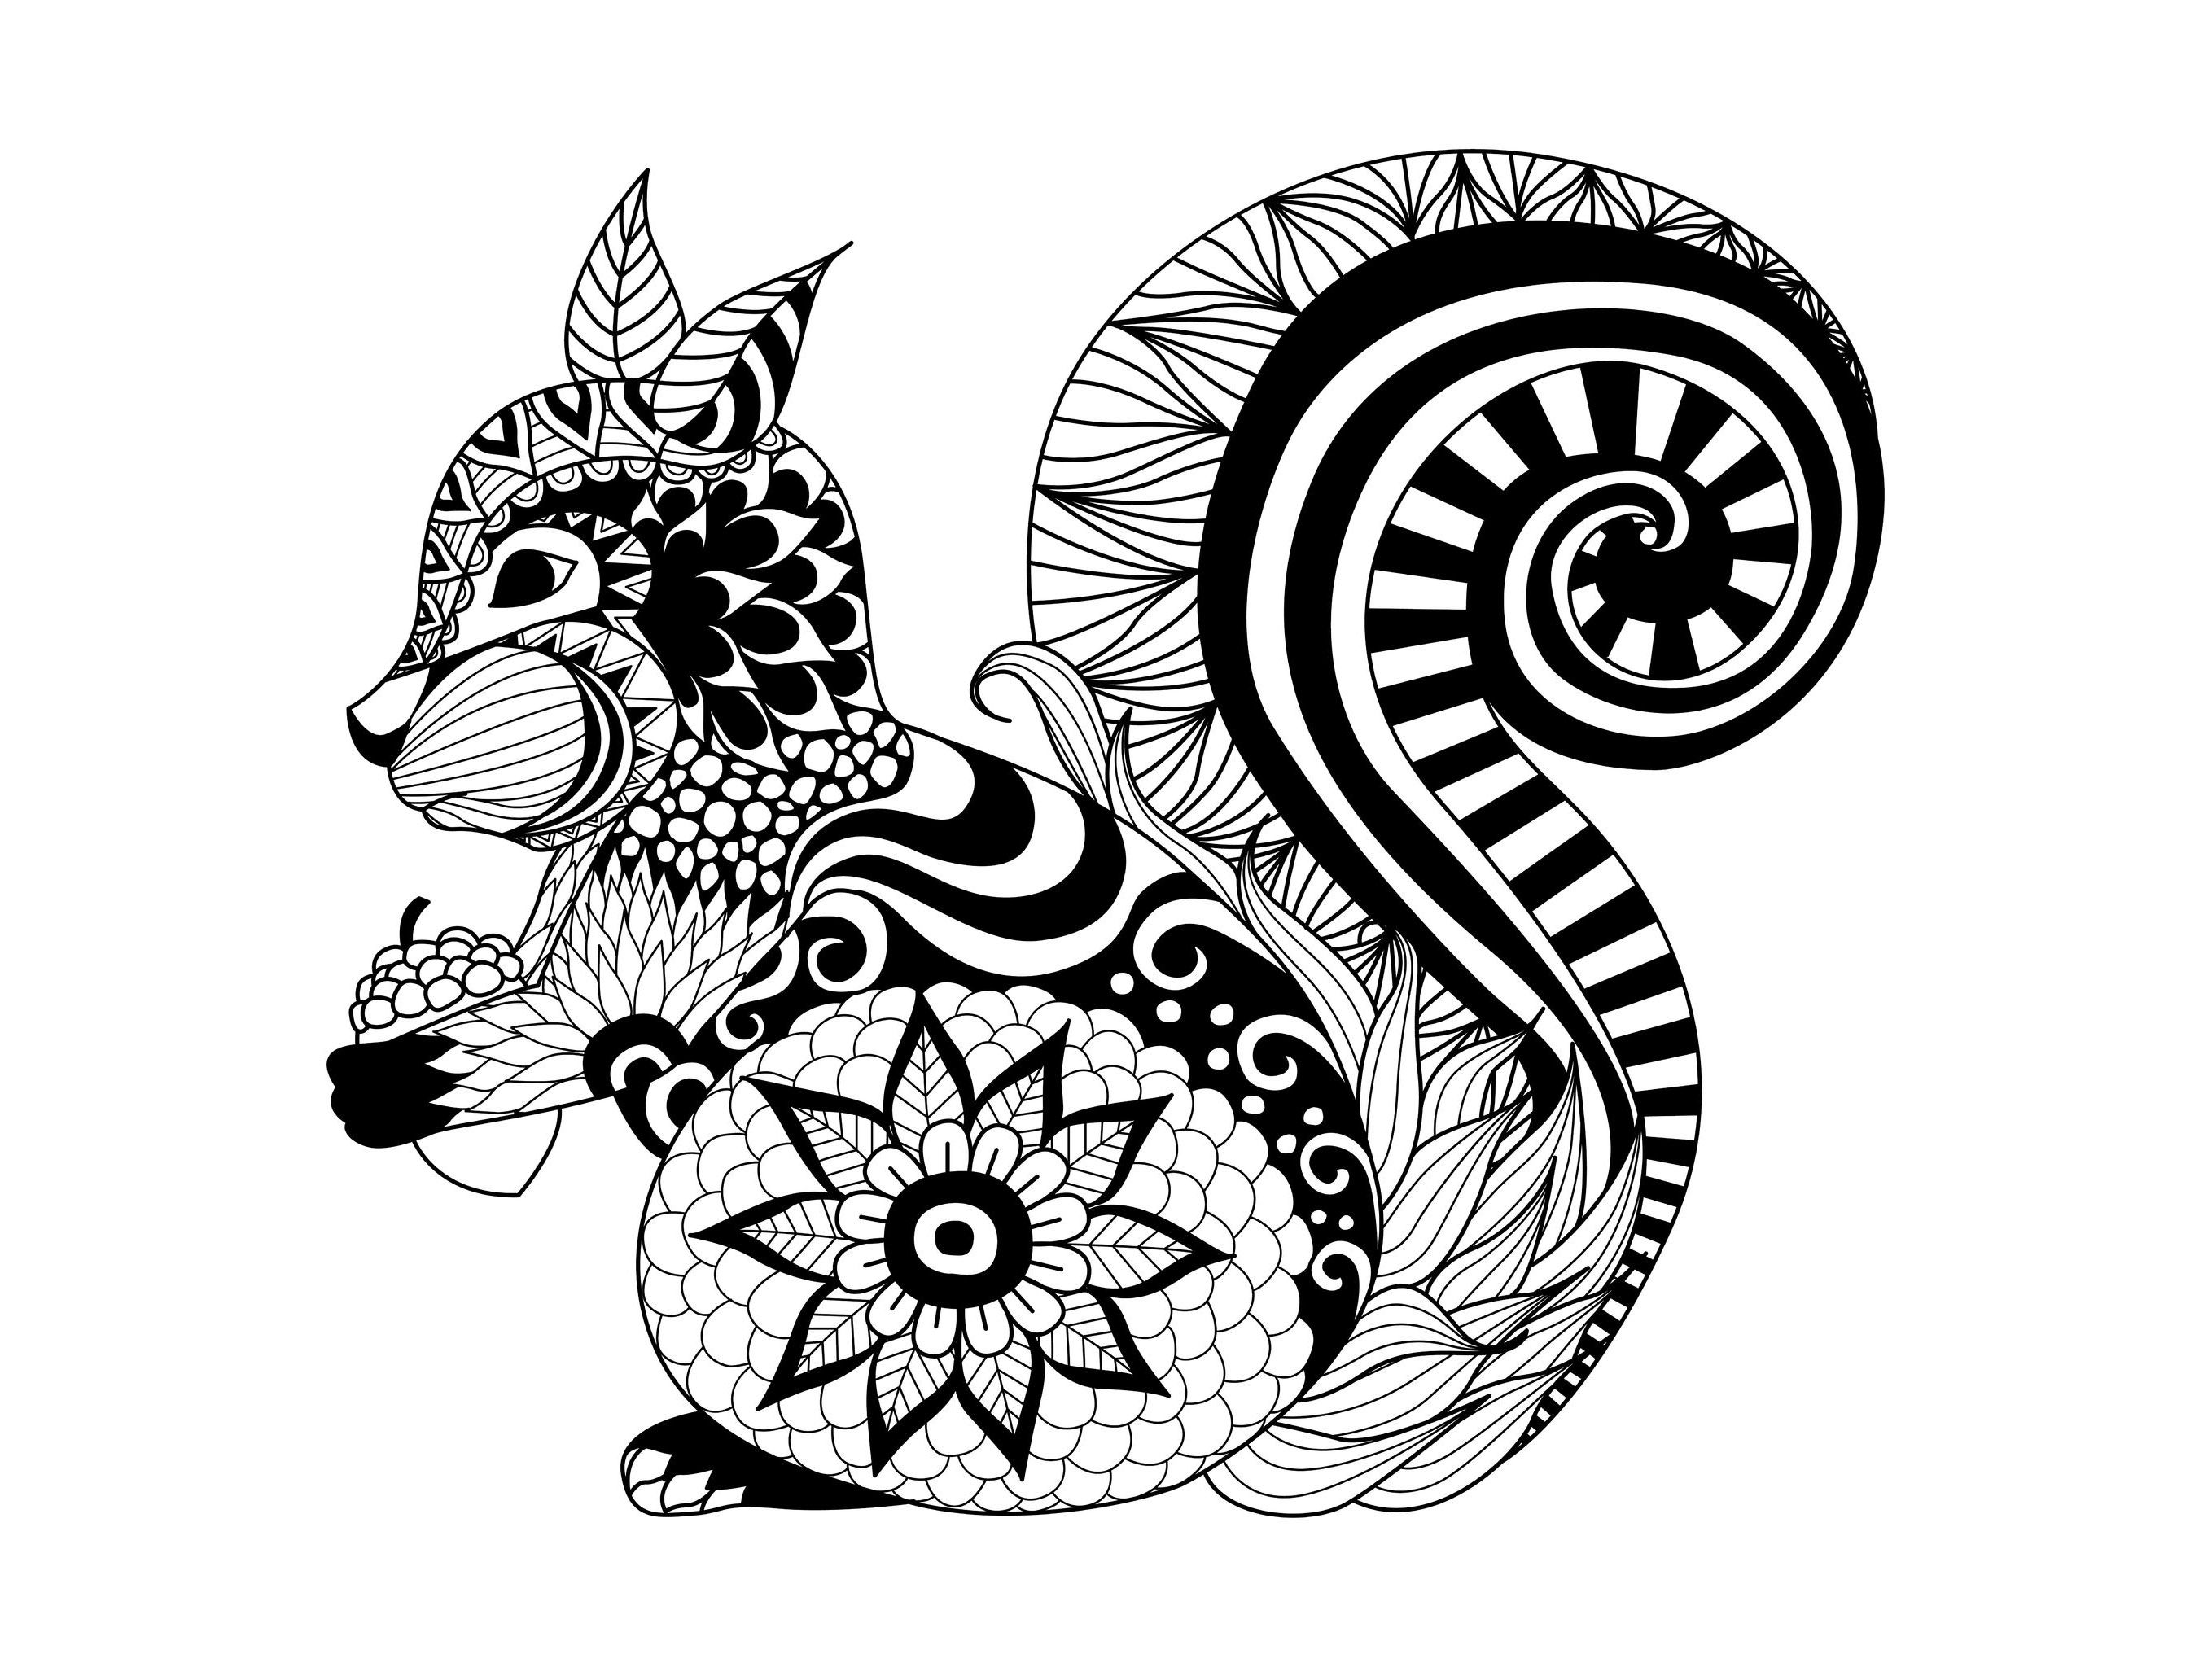 25 Inspiration Image Of Animal Mandala Coloring Pages Entitlementtrap Com Squirrel Coloring Page Animal Coloring Pages Shopkins Colouring Pages